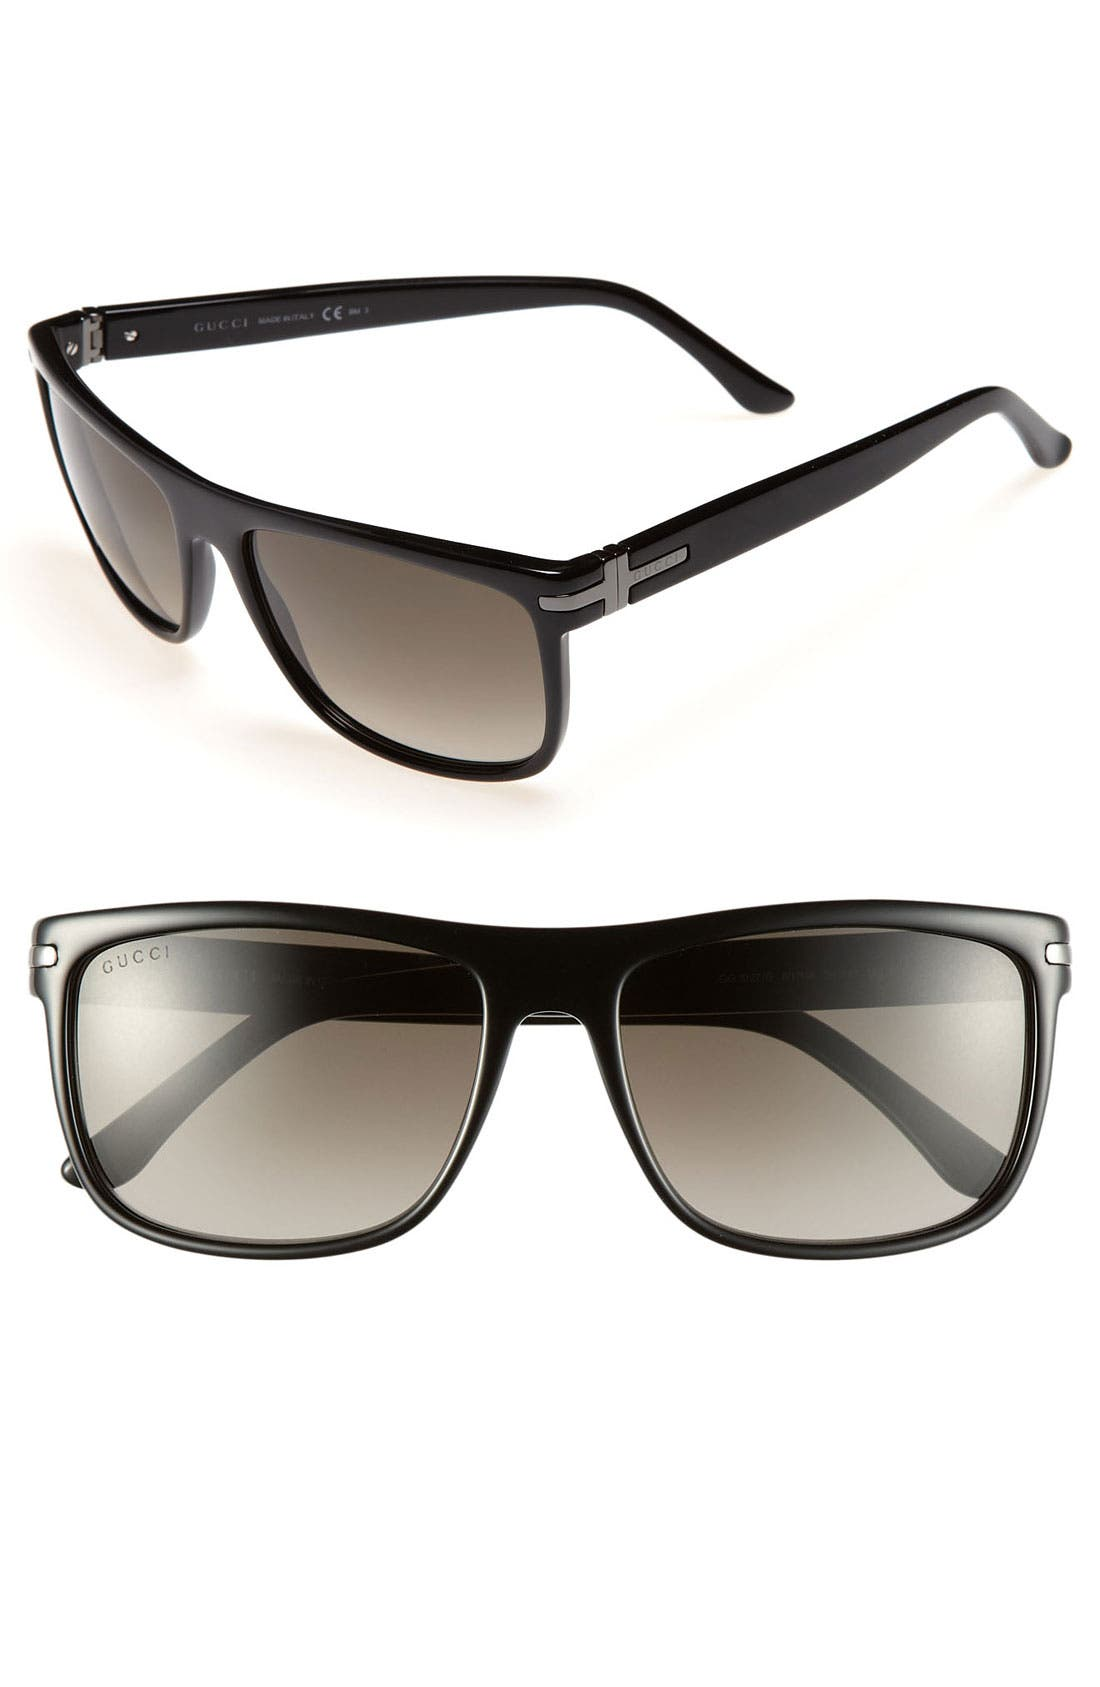 Alternate Image 1 Selected - Gucci '1027' 57mm Sunglasses